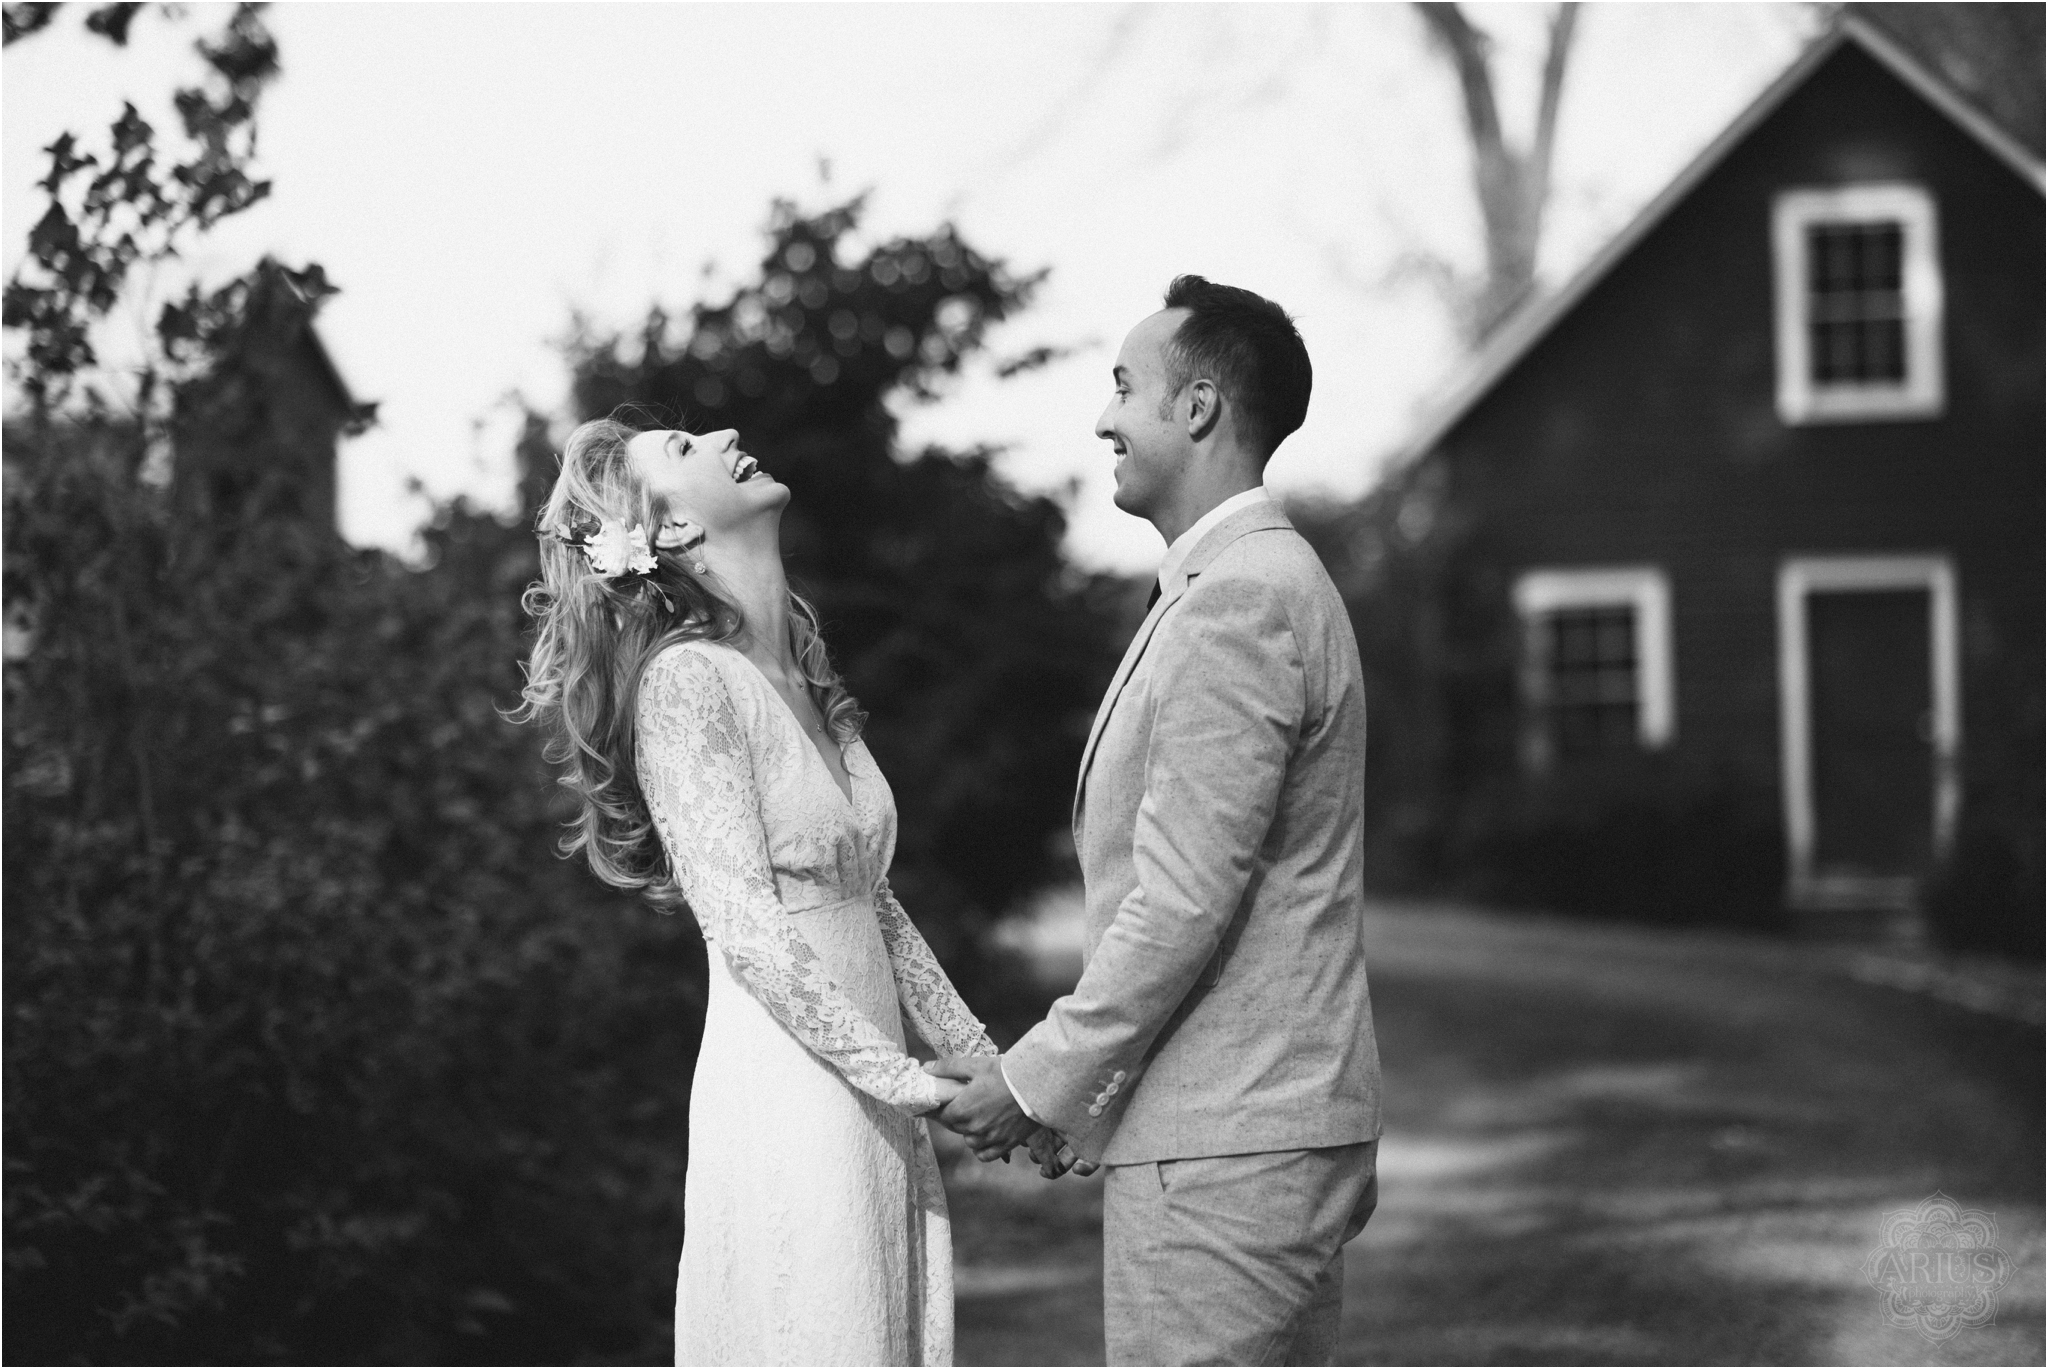 Wedding at Crested Hen Farms by Arius Photography